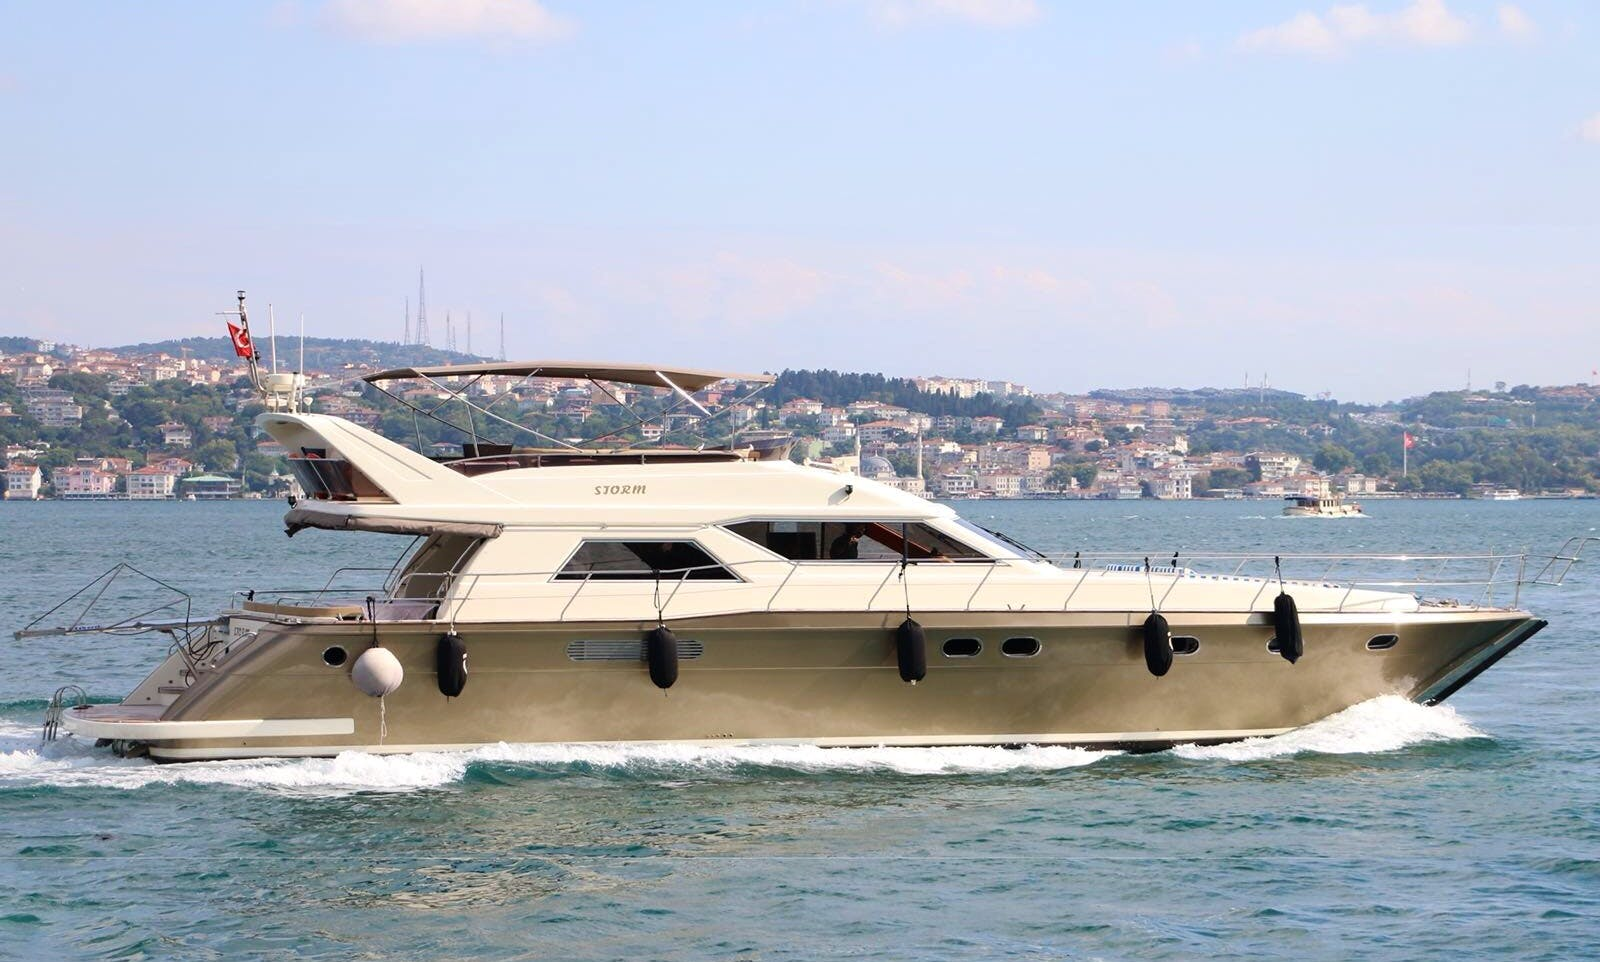 Book this Amazing All Inclusive Luxury Motor Yacht rental in İstanbul for a great time on the water